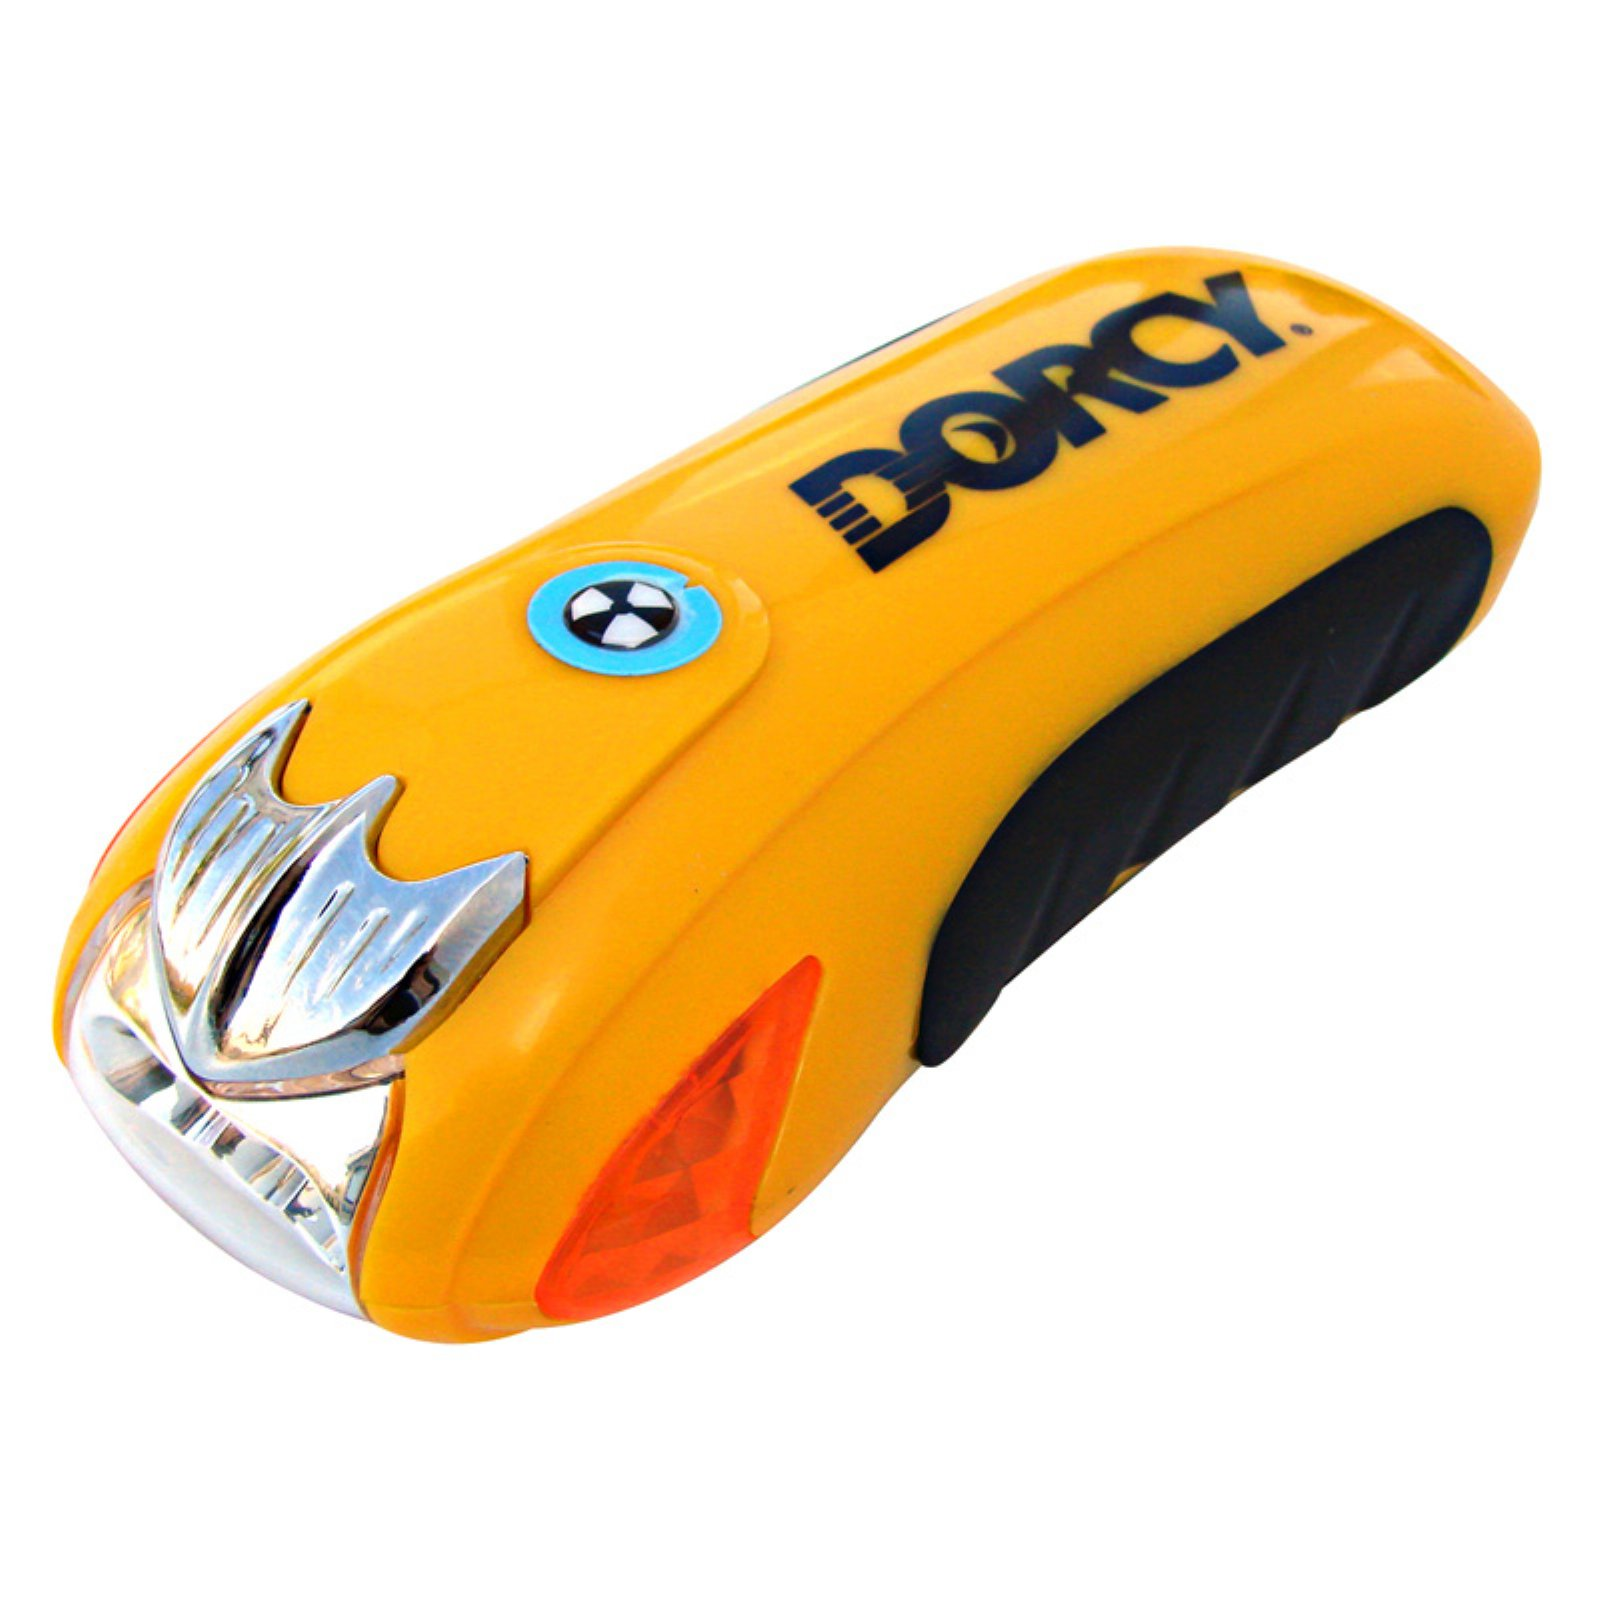 Dorcy 7.7-Lumen Dynamo Rechargeable LED Emergency Survival Flashlight with Hand Crank and Flashing Mode, Yellow (41-4272)